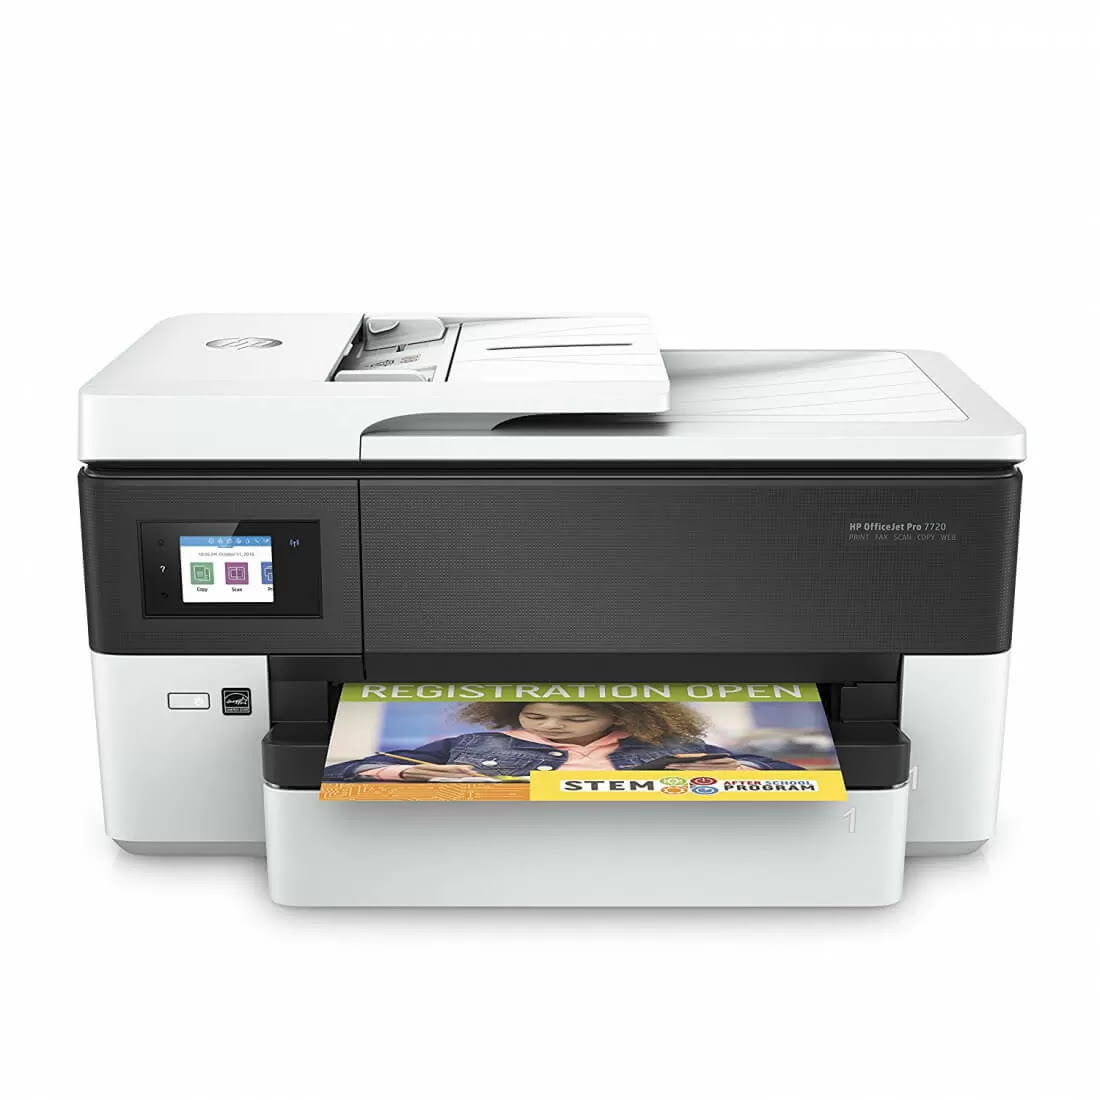 HP OfficeJet Pro 7720 All-in-One Series Reviews - TechSpot